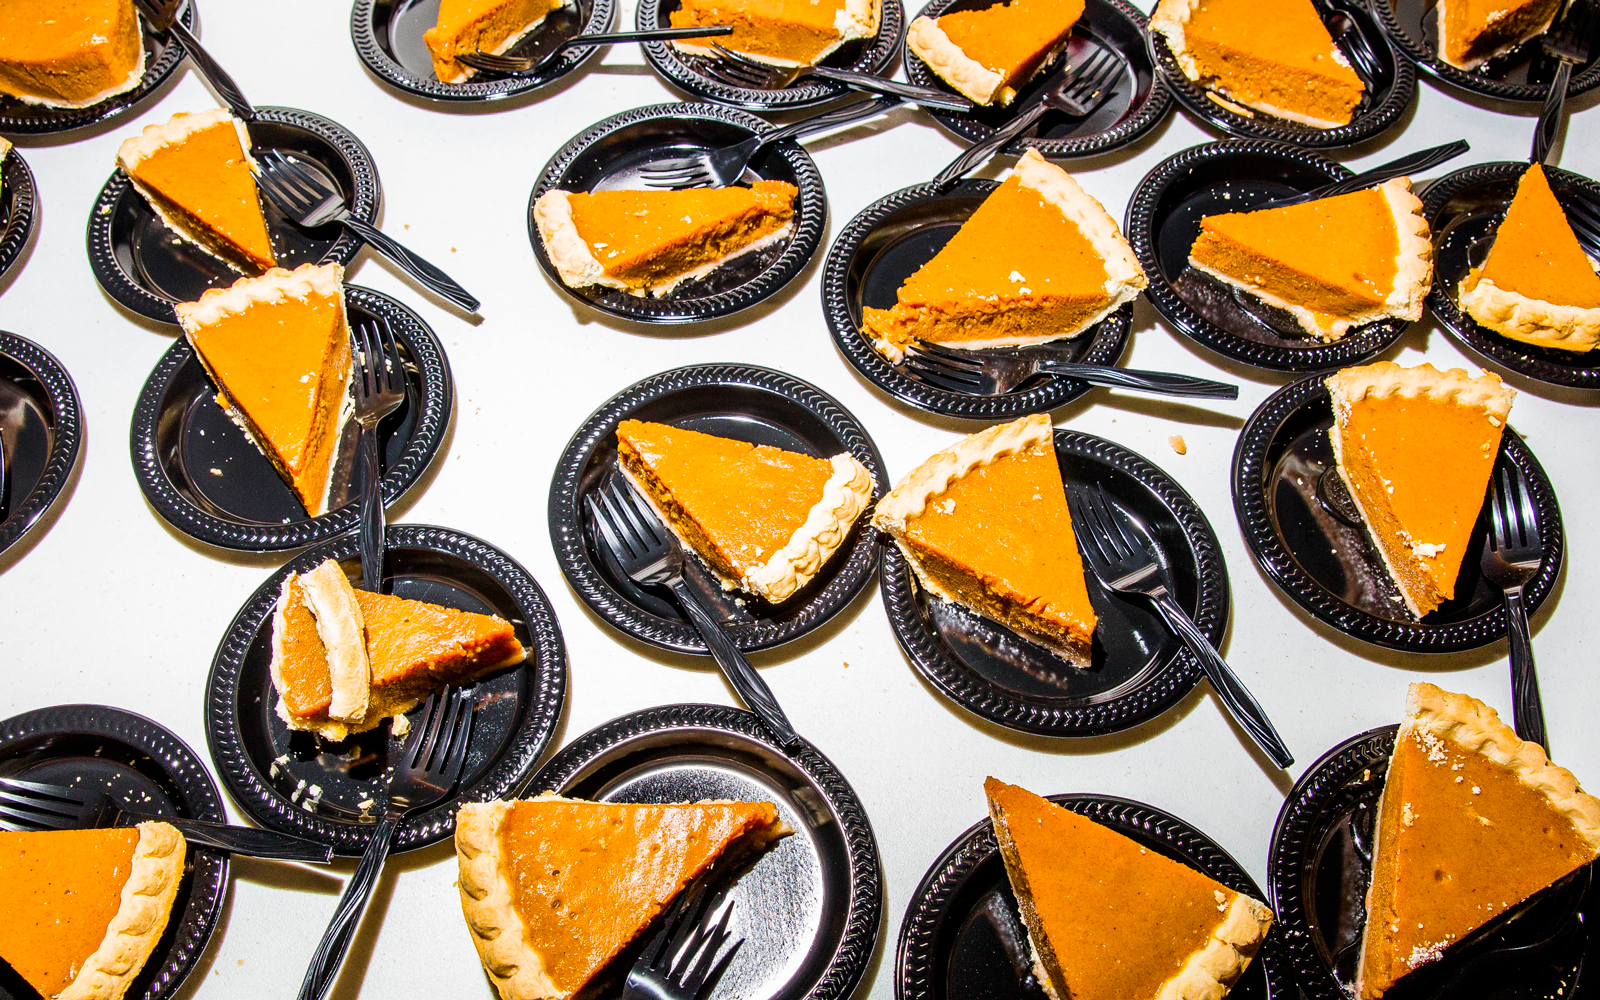 Pumpkin pie slices